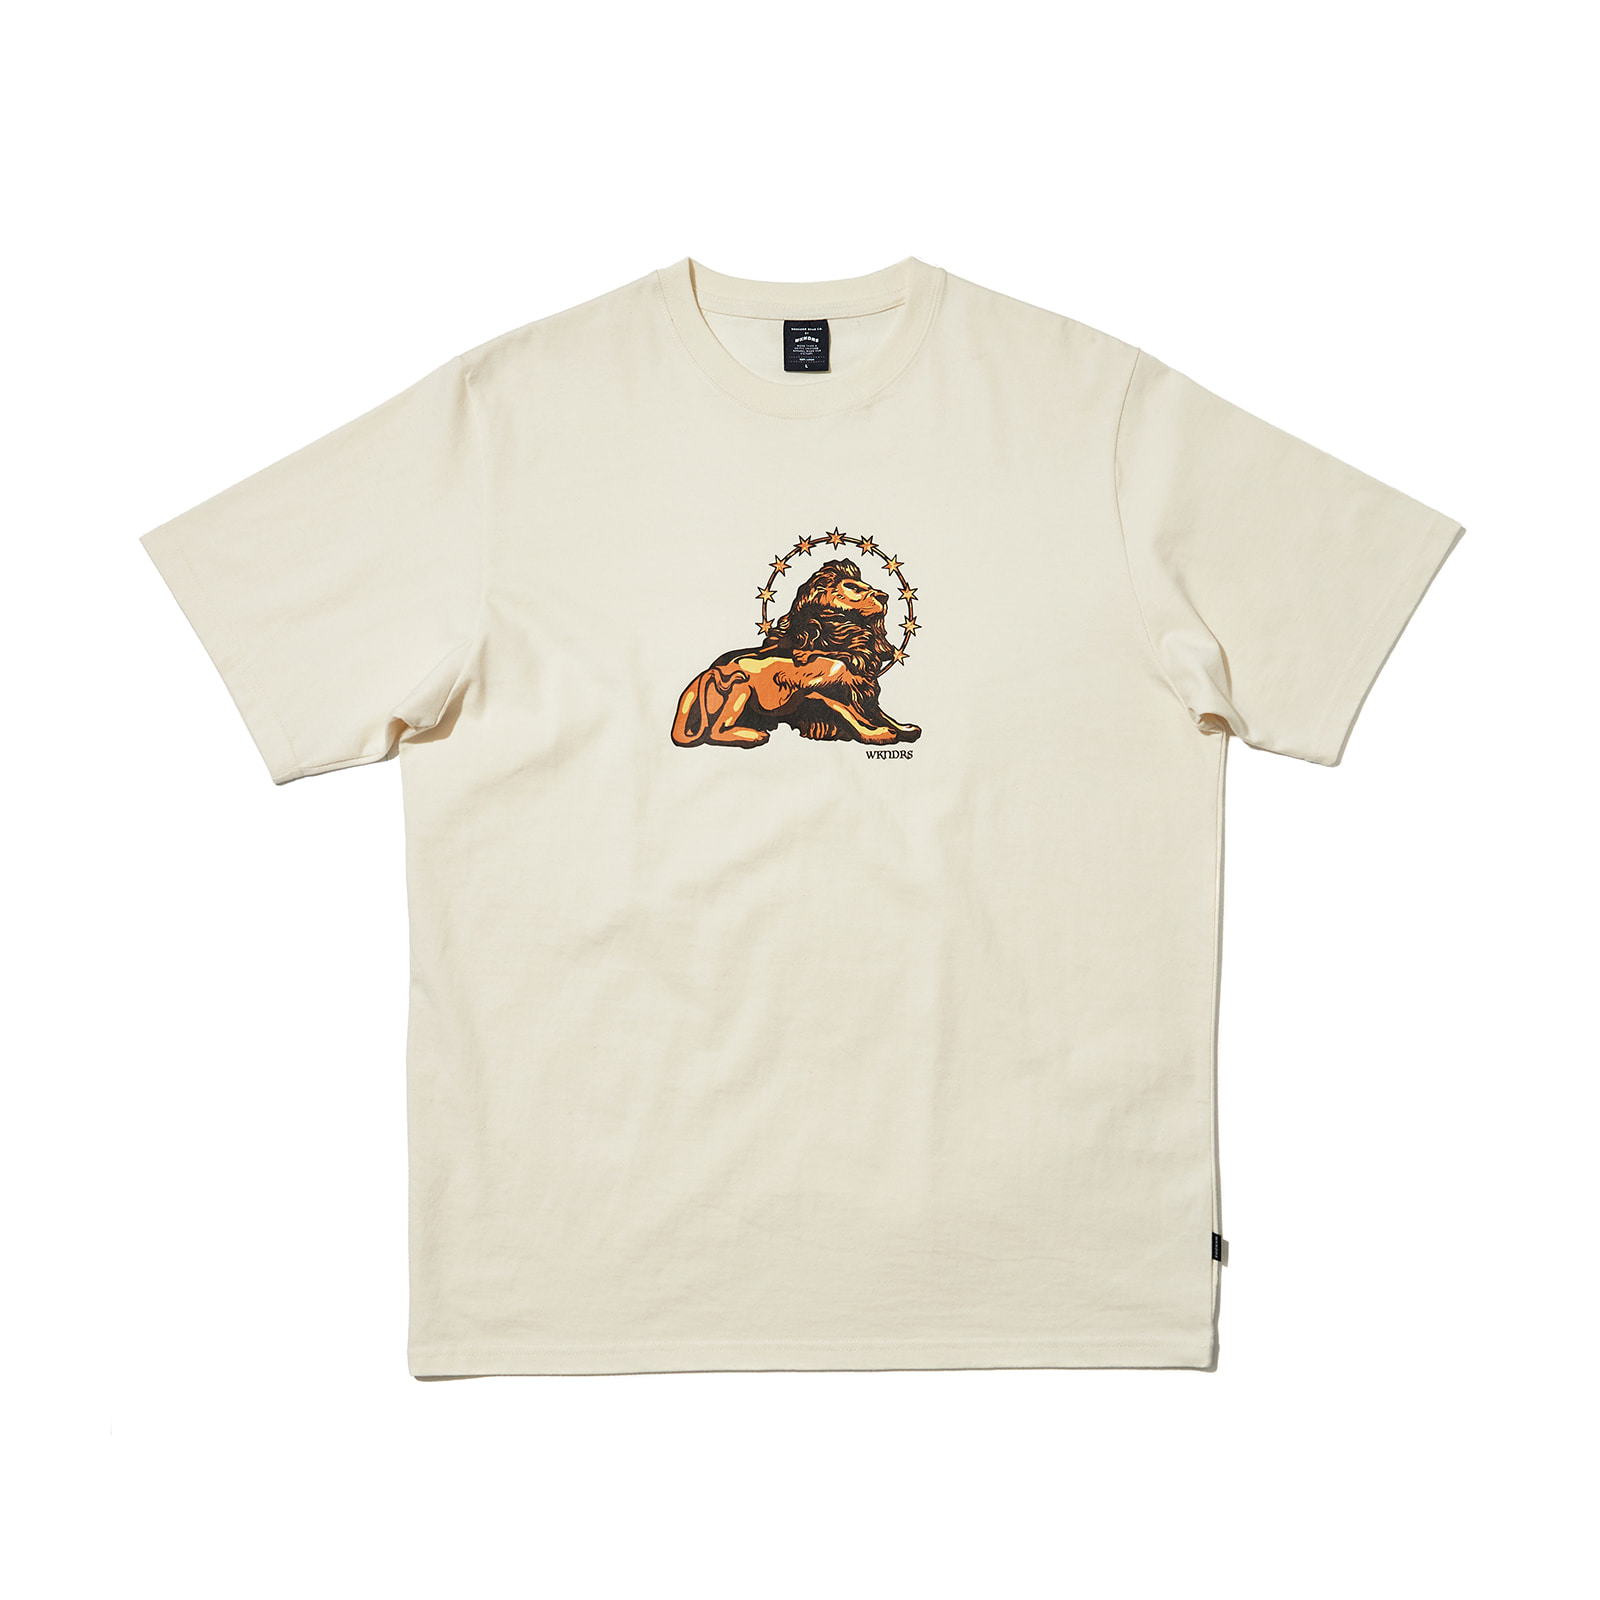 KING SS T-SHIRT (WHITE)